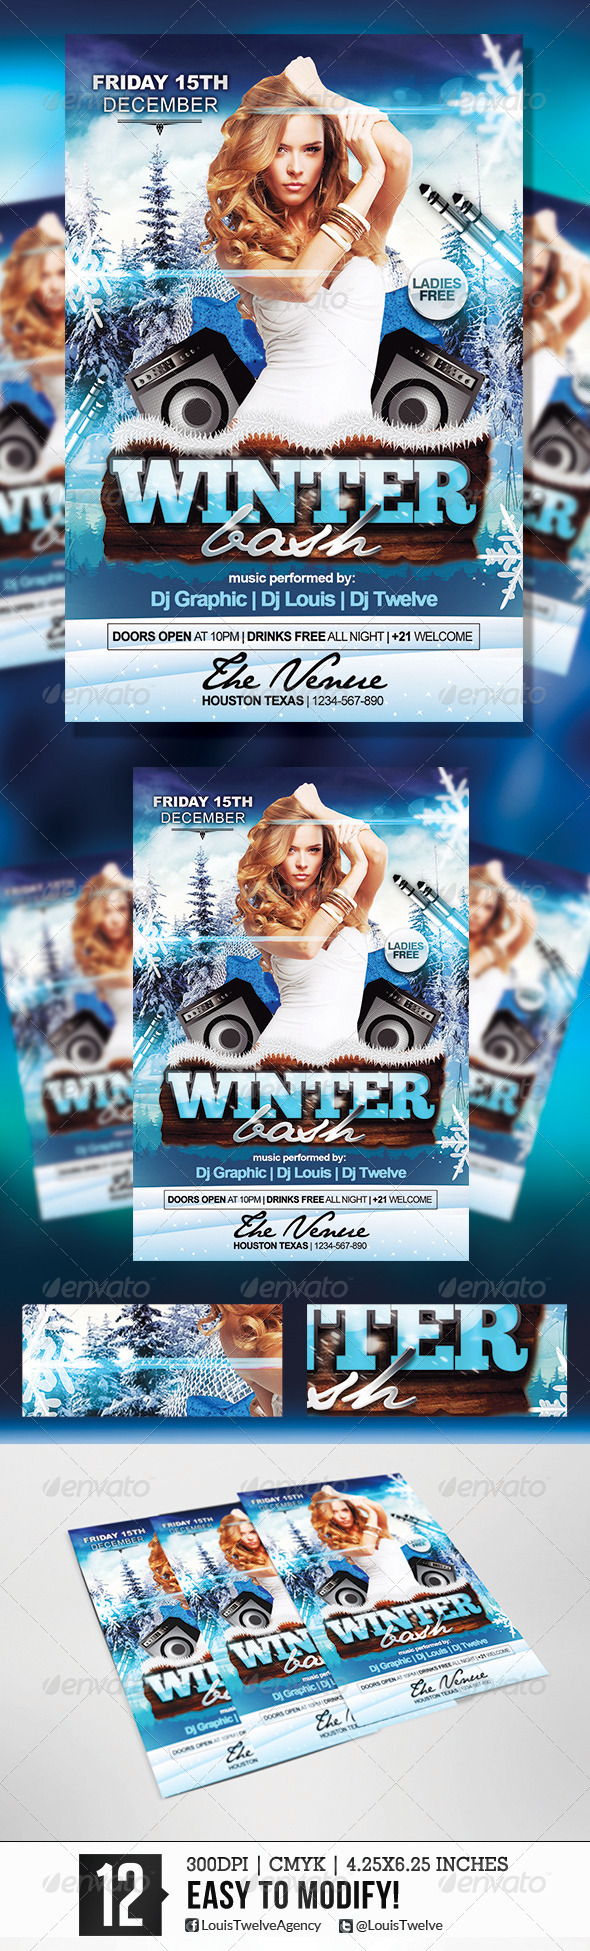 GraphicRiver Winter Bash Flyer Template 5790826